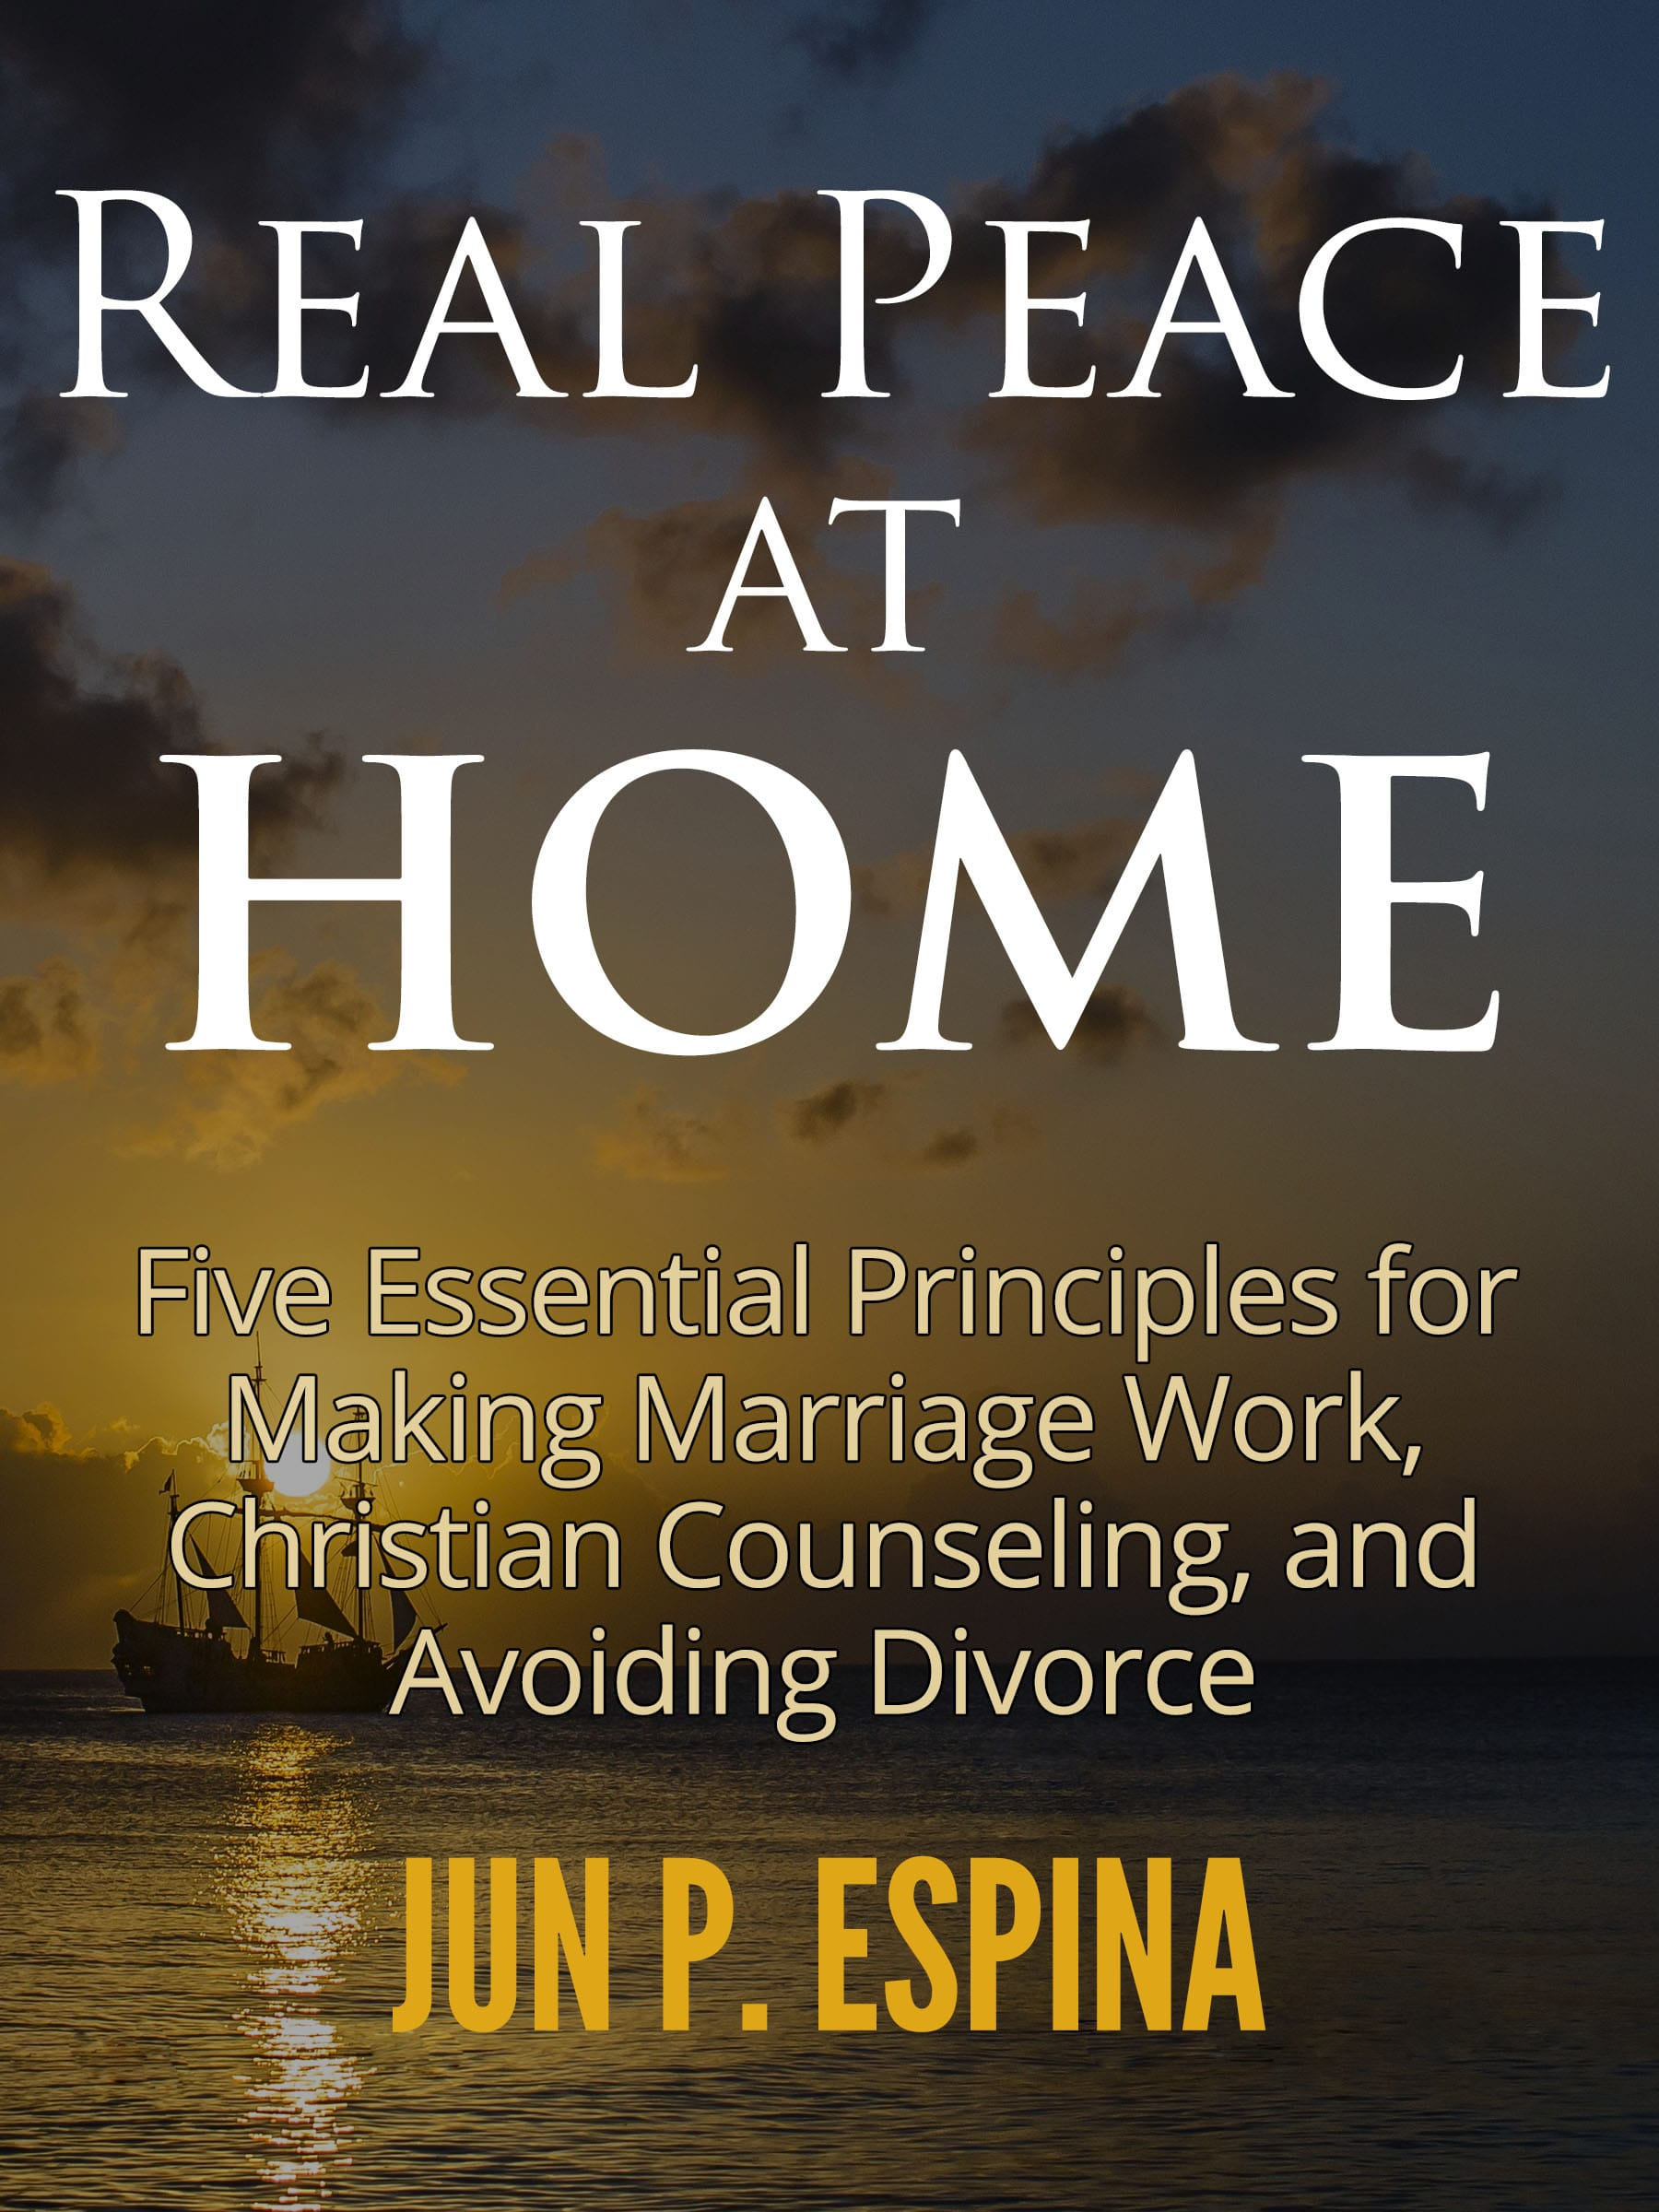 courage real peace home principles counseling